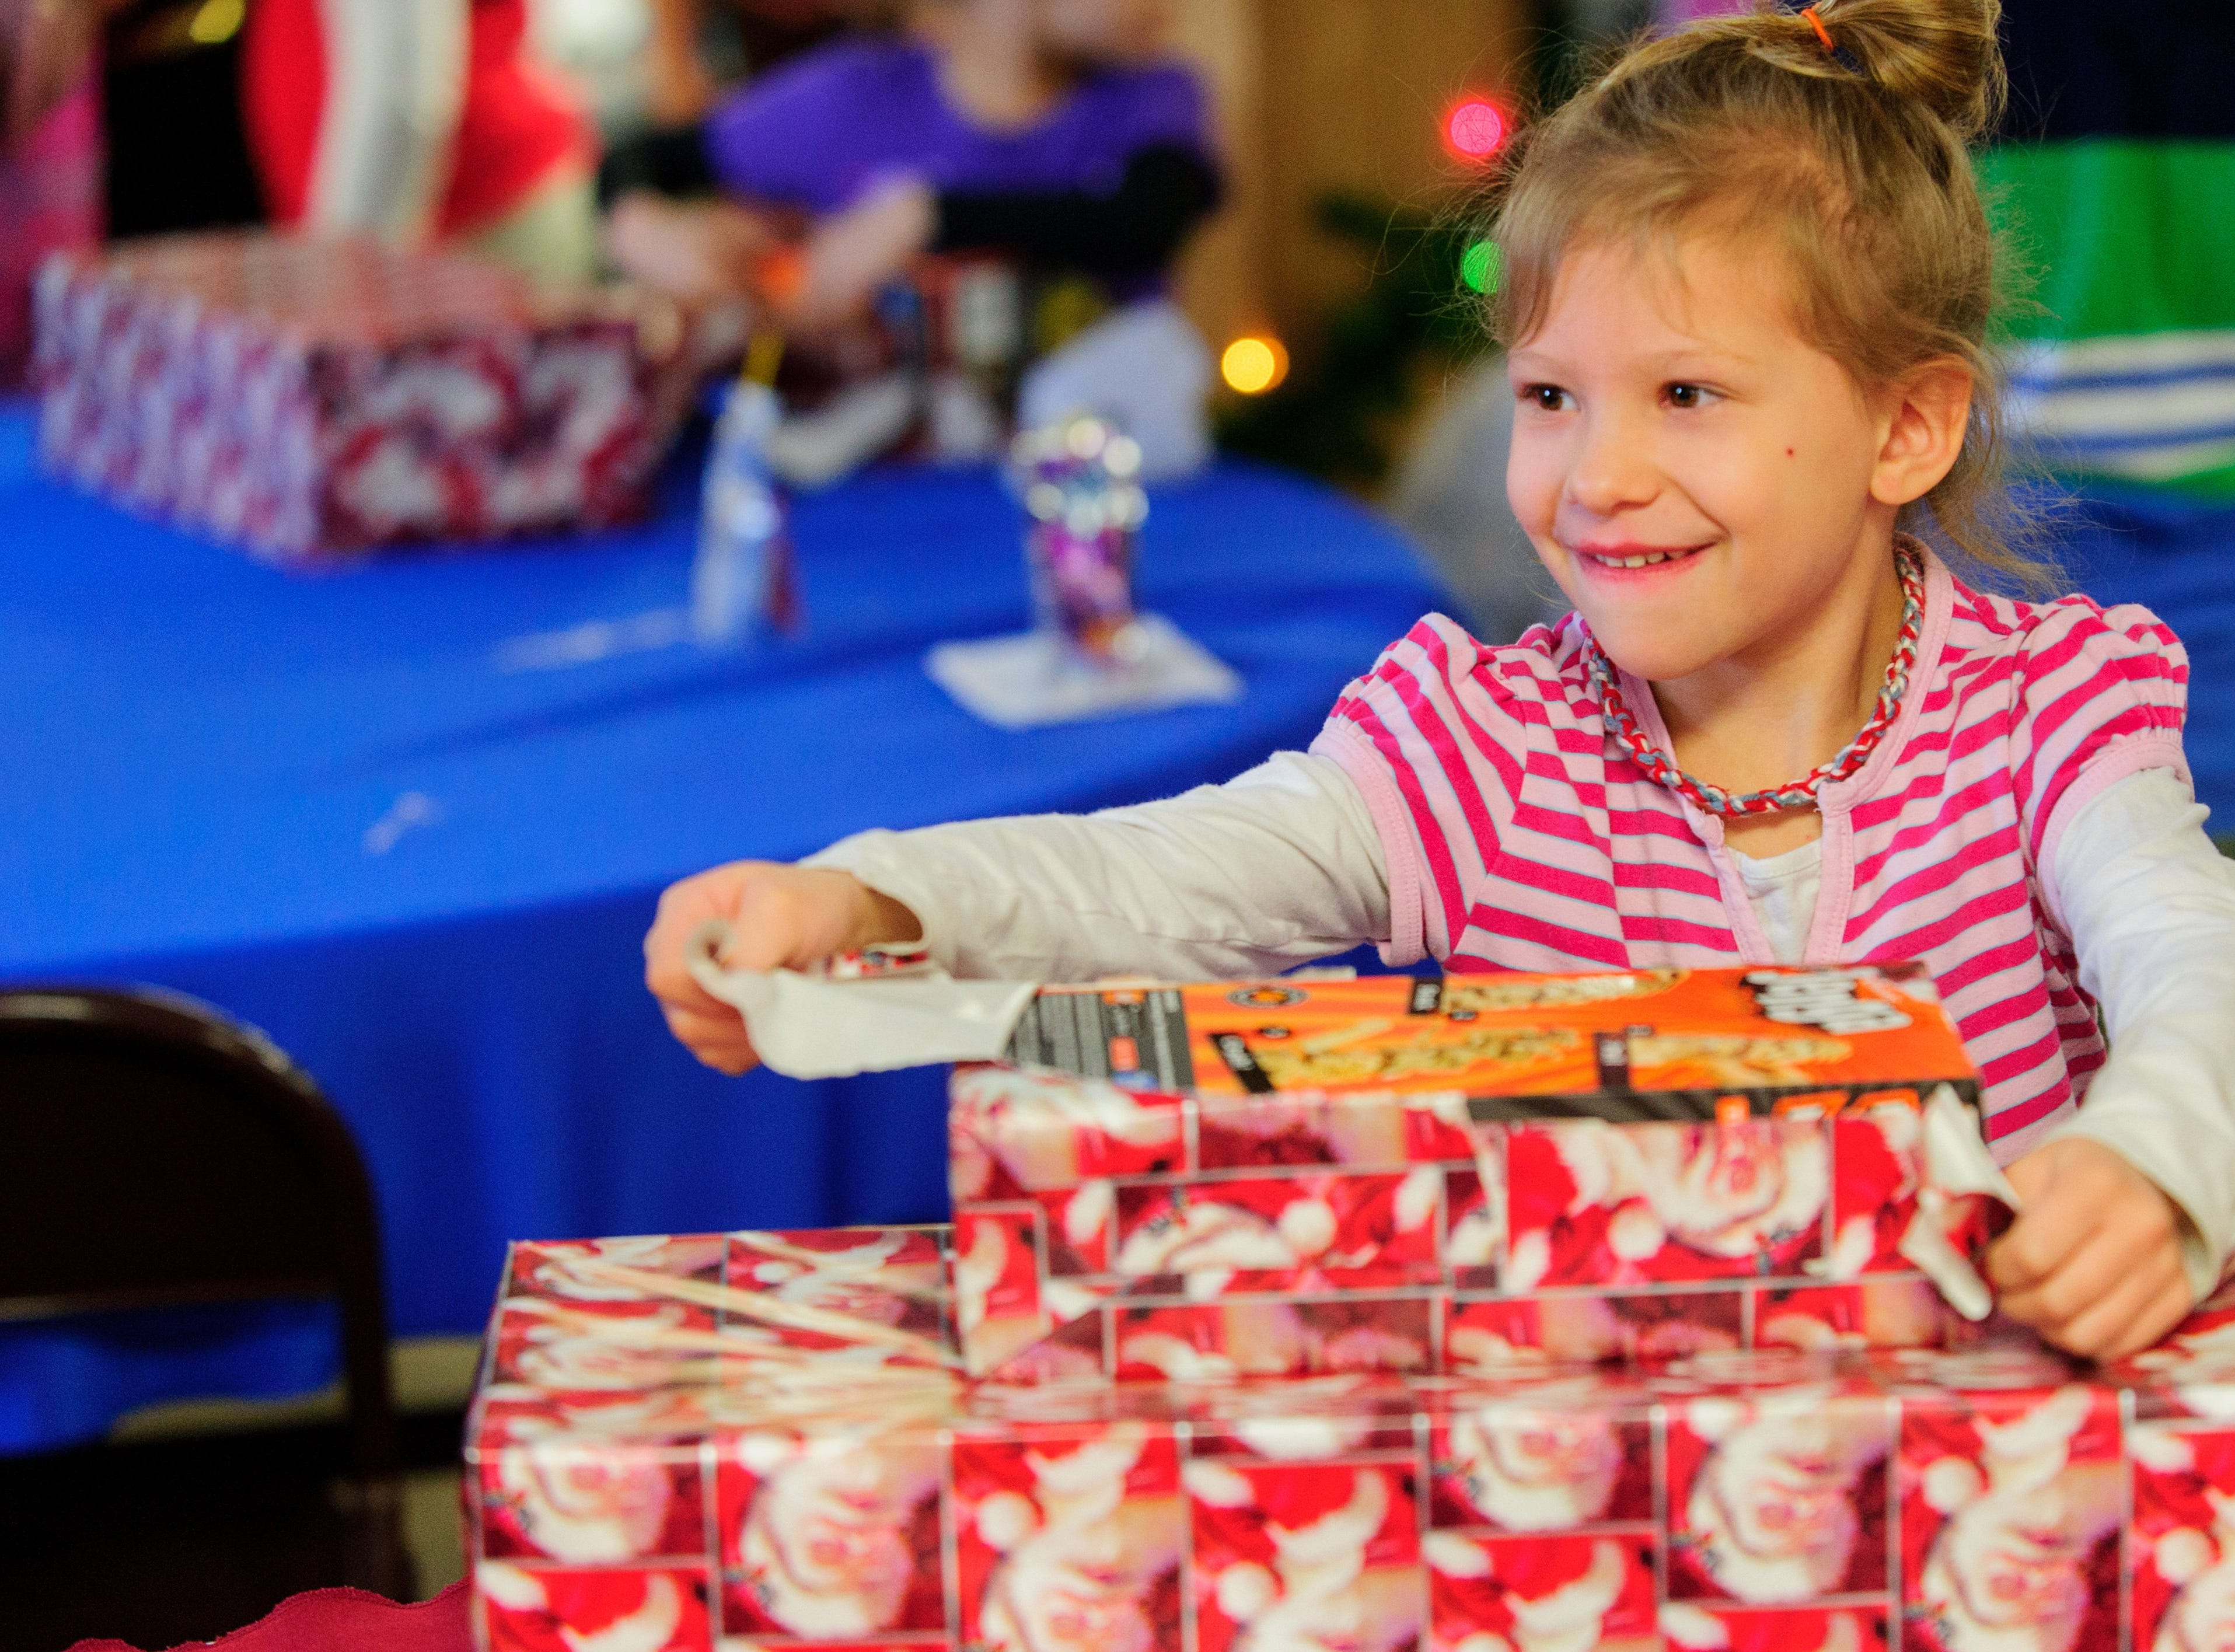 Candice Nau, 5, unwraps one of her presents from Santa at the annual FOP Christmas party at FOP Camp on Happe Road on Evansville Northwest side Saturday morning Dec. 14, 2013. For close to 50 years the FOP has been have Christmas party for Evansville's needy children.